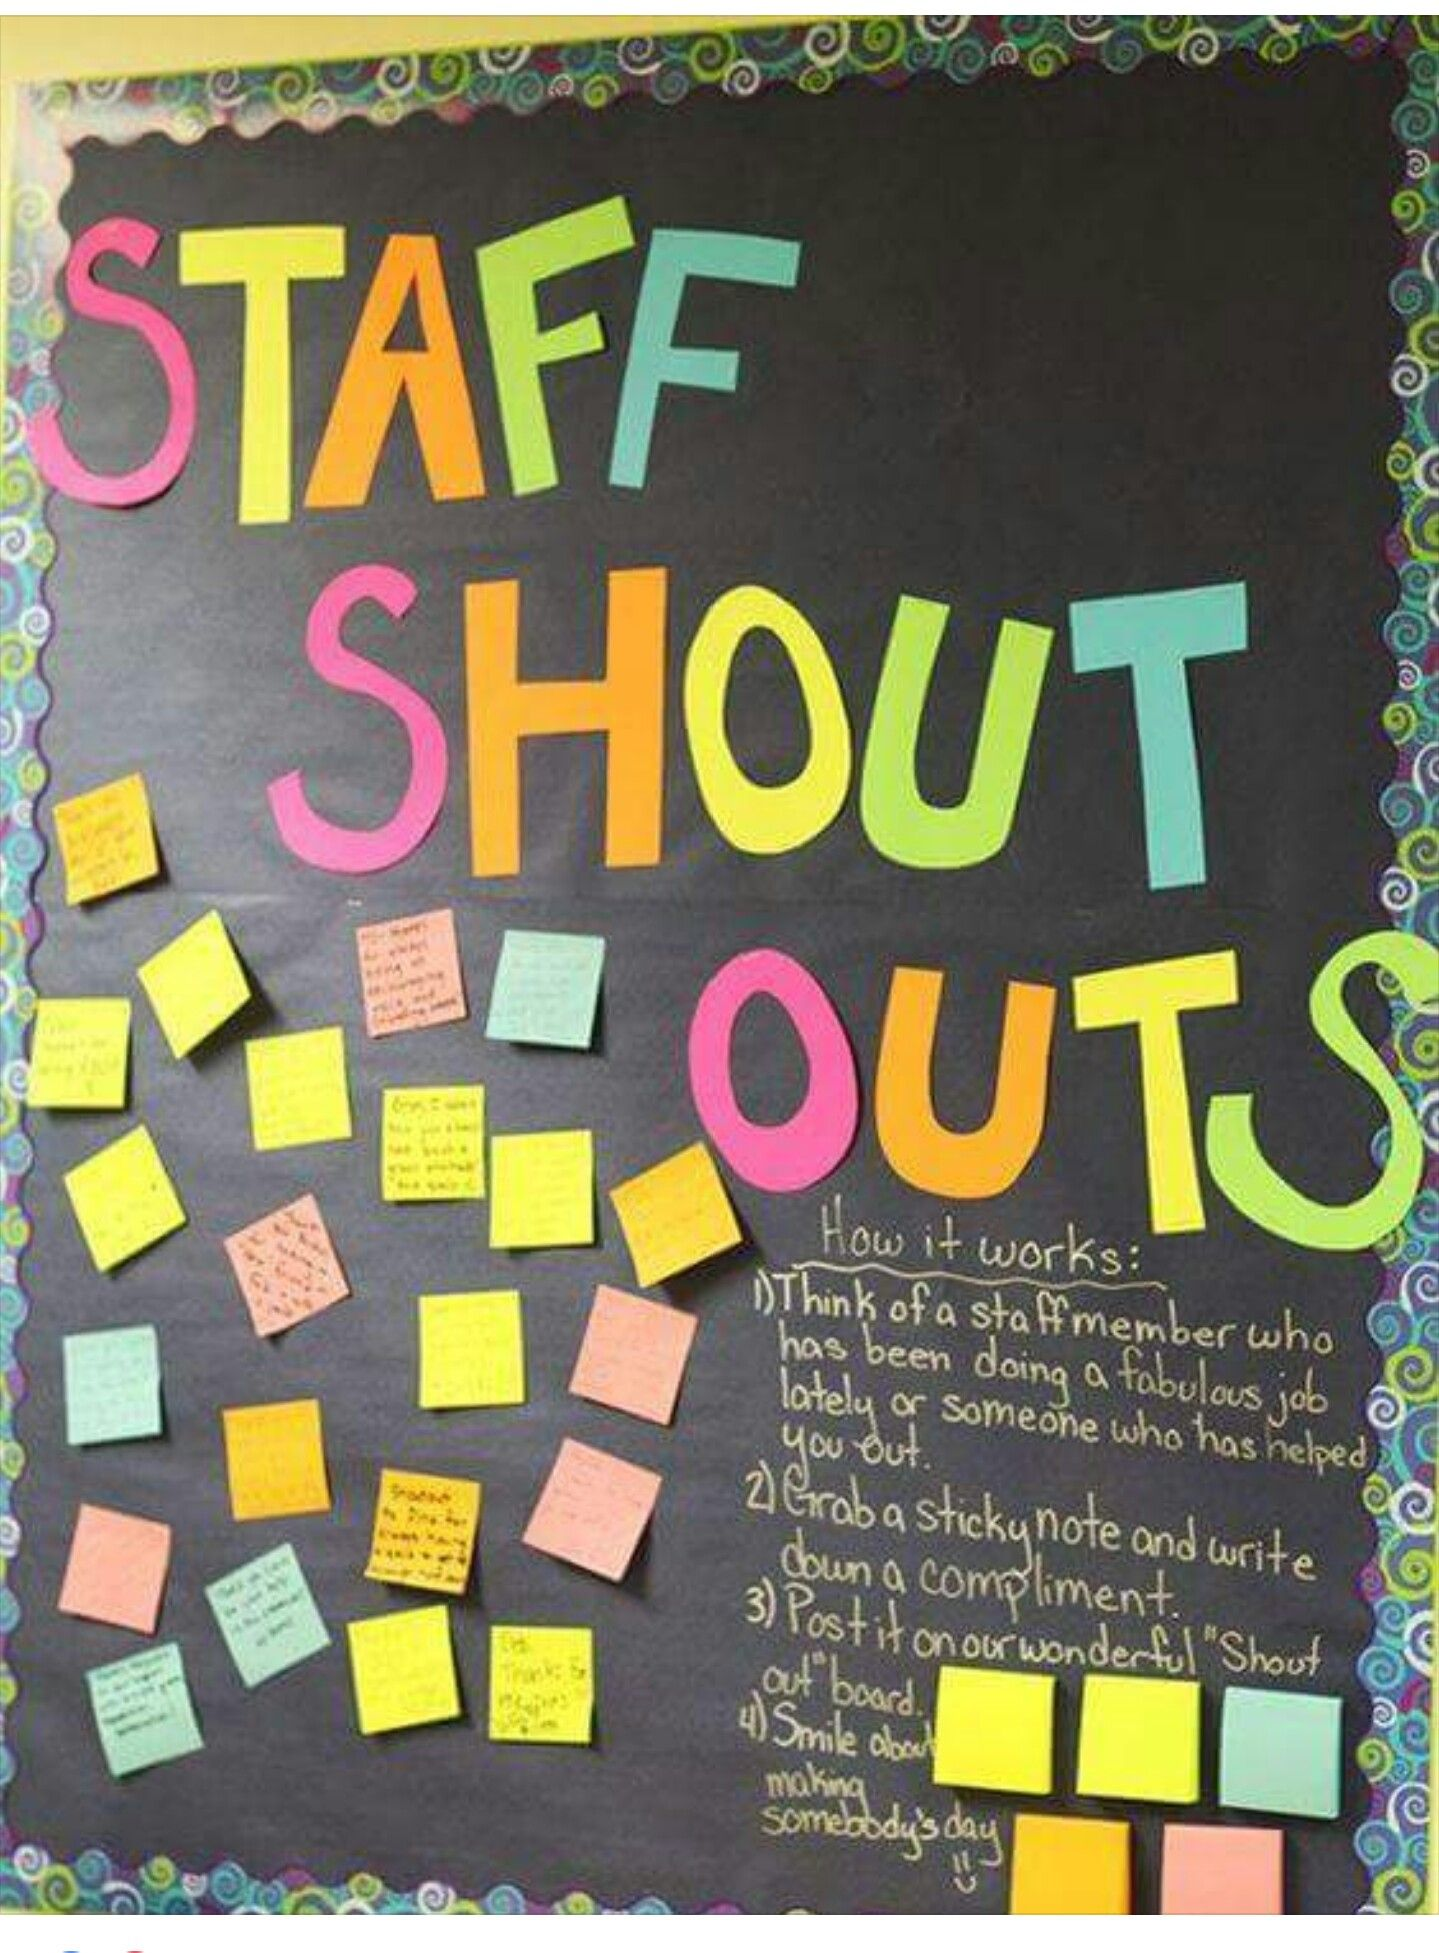 Love this idea - could we change 'staff' to general shout ...